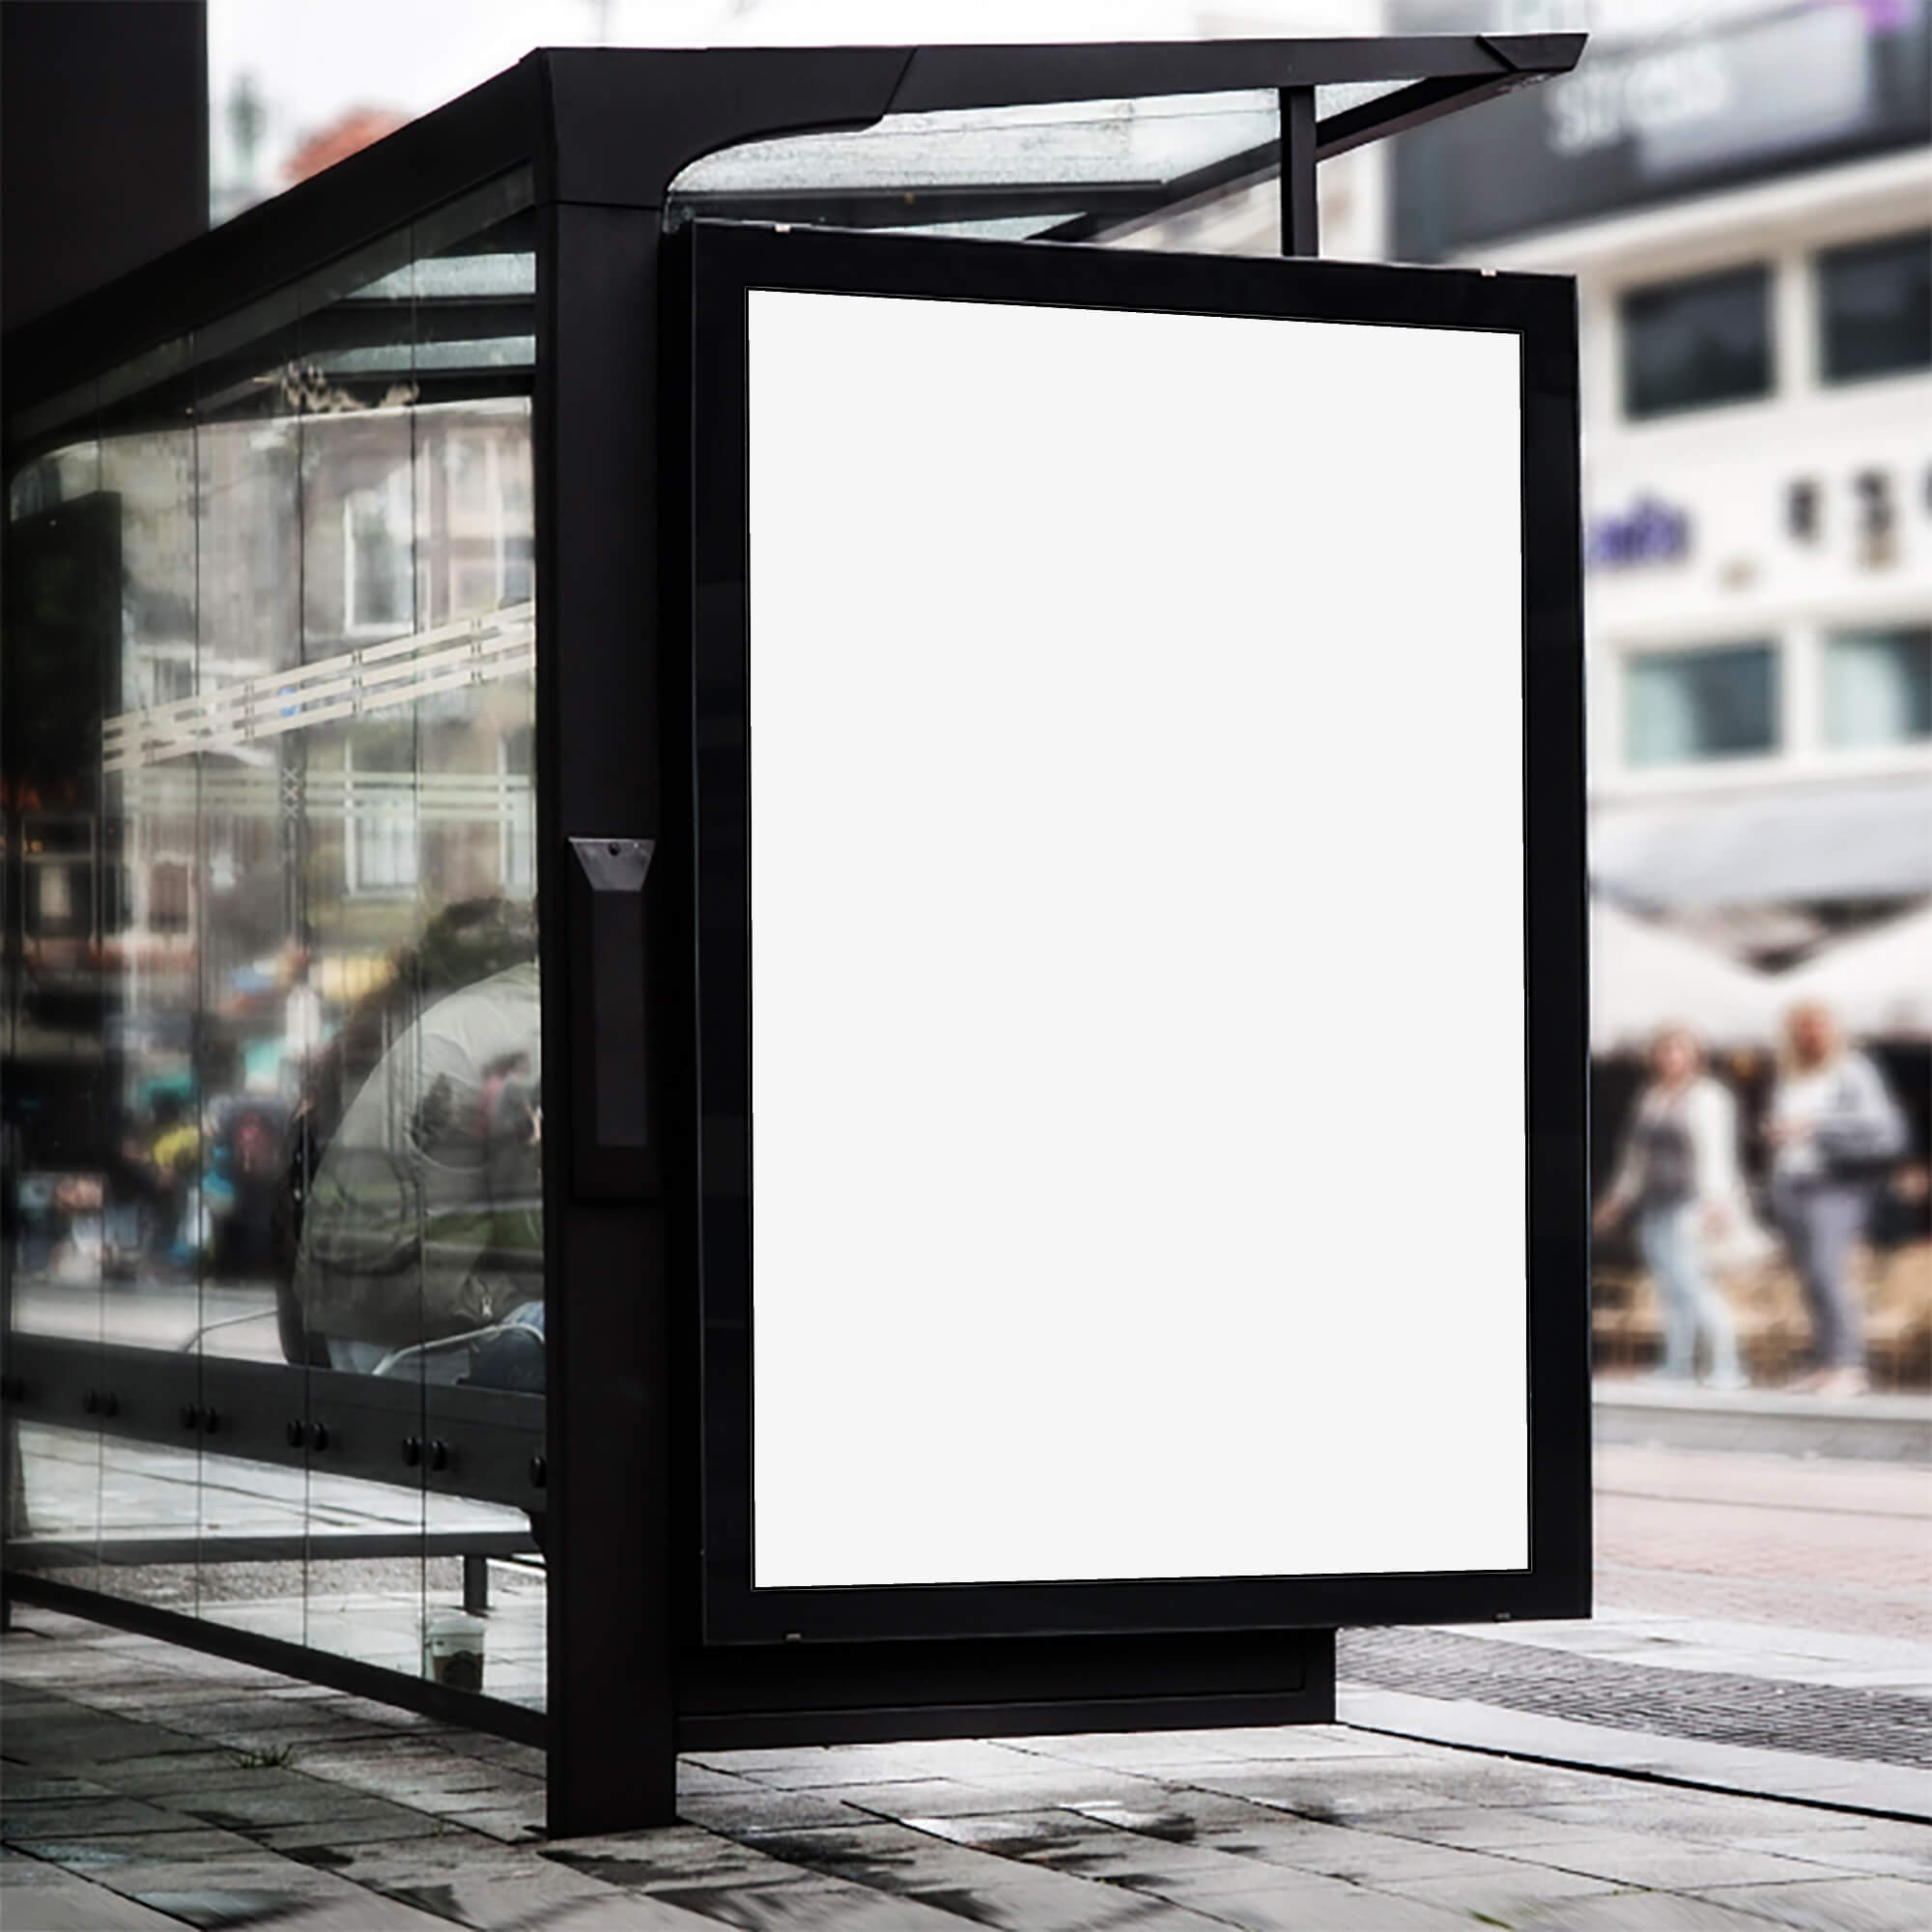 Blank Free Bus Shelter Mockup PSD Template